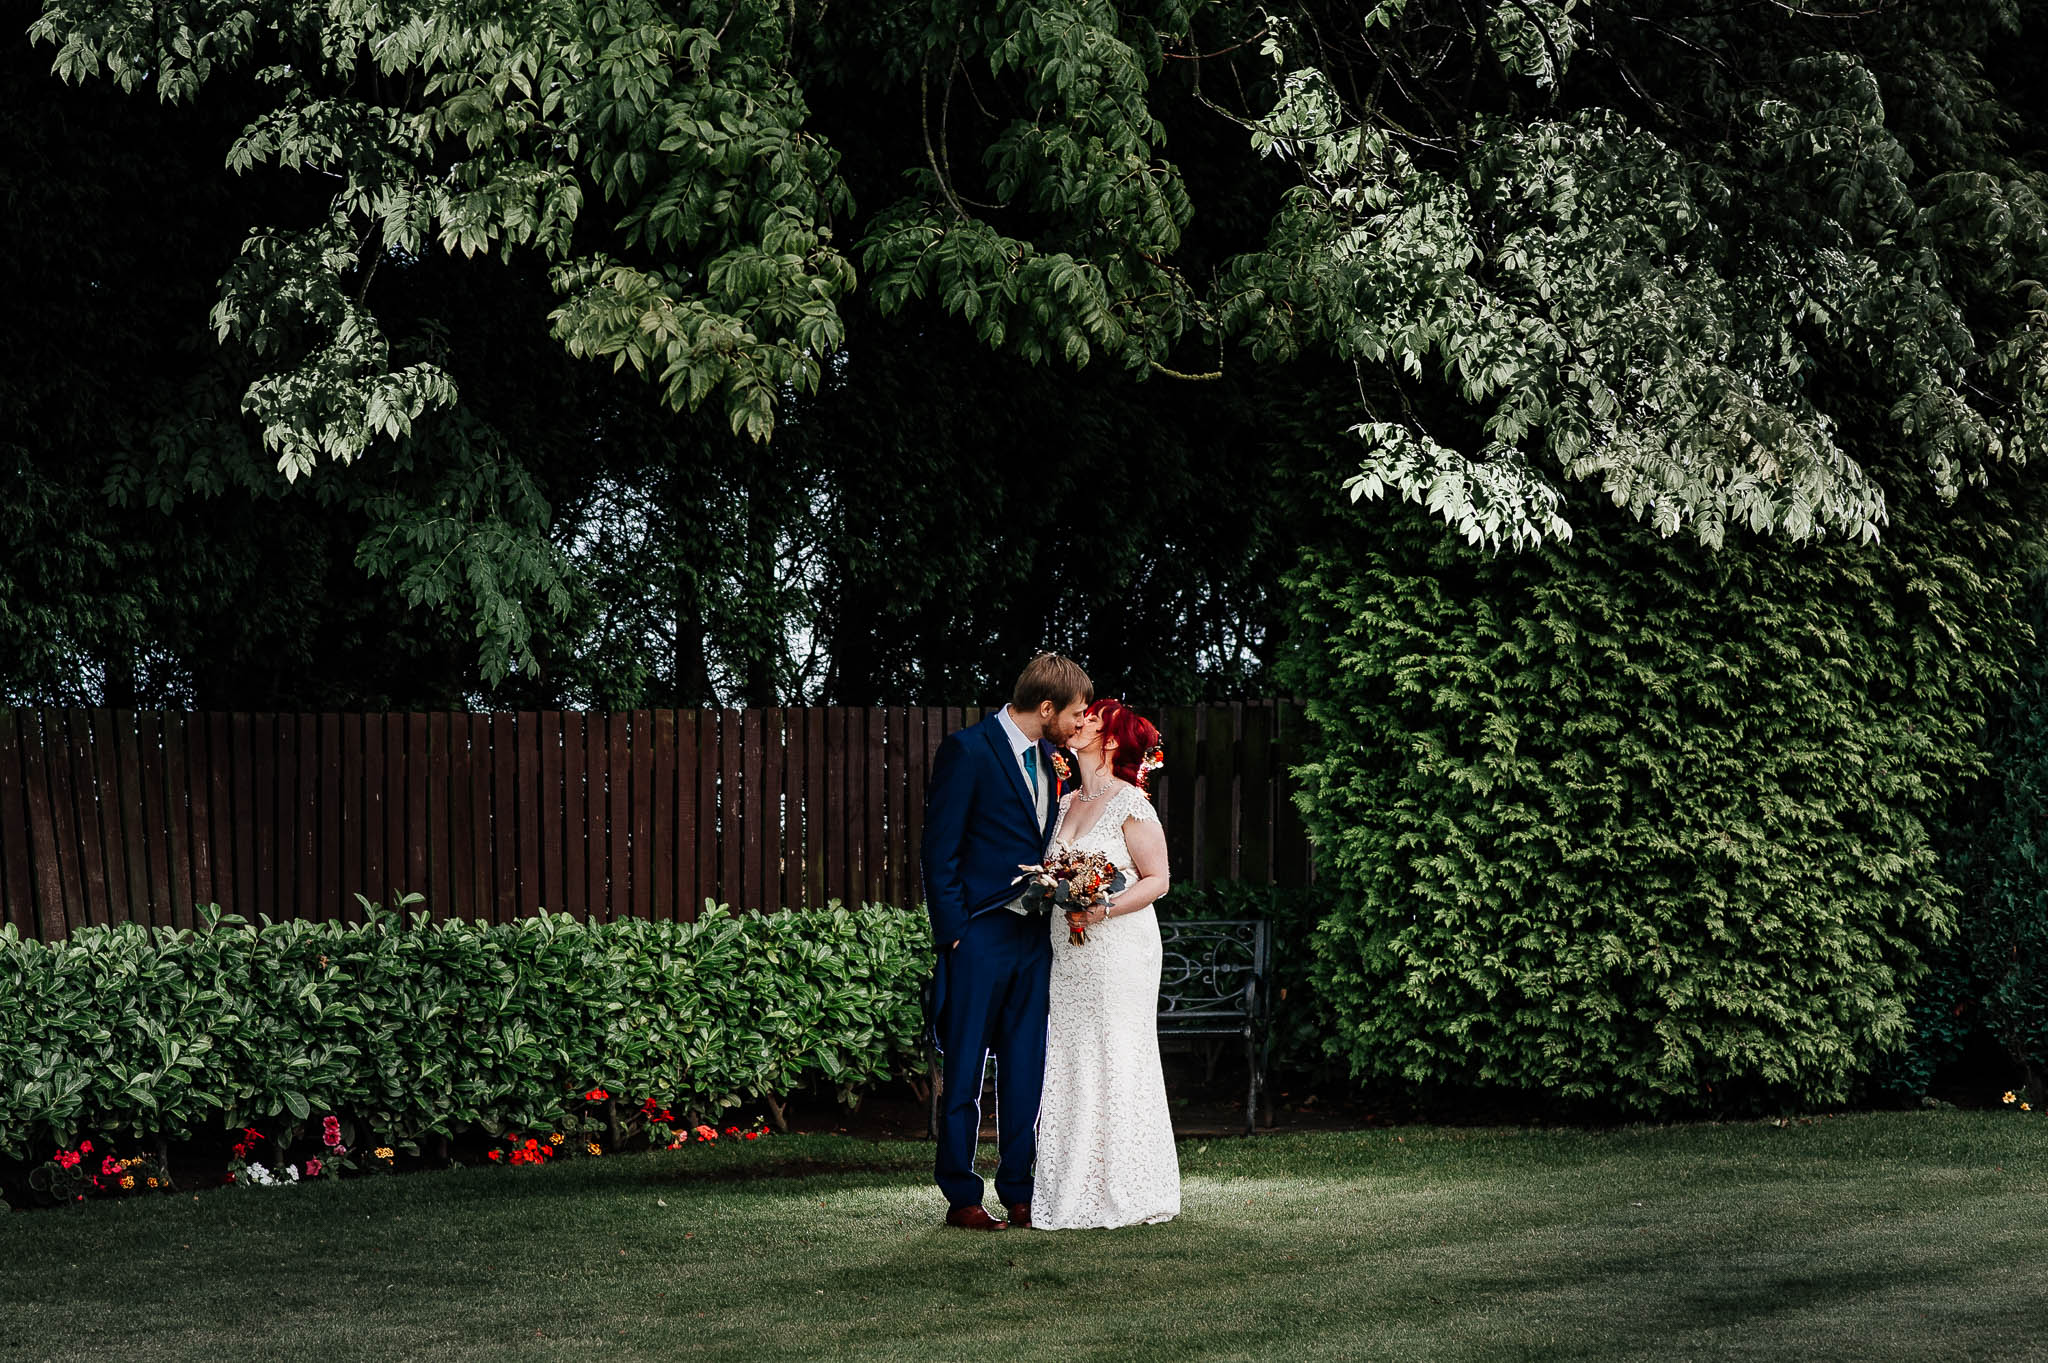 Married couple at Rogerthorpe manor wedding venue